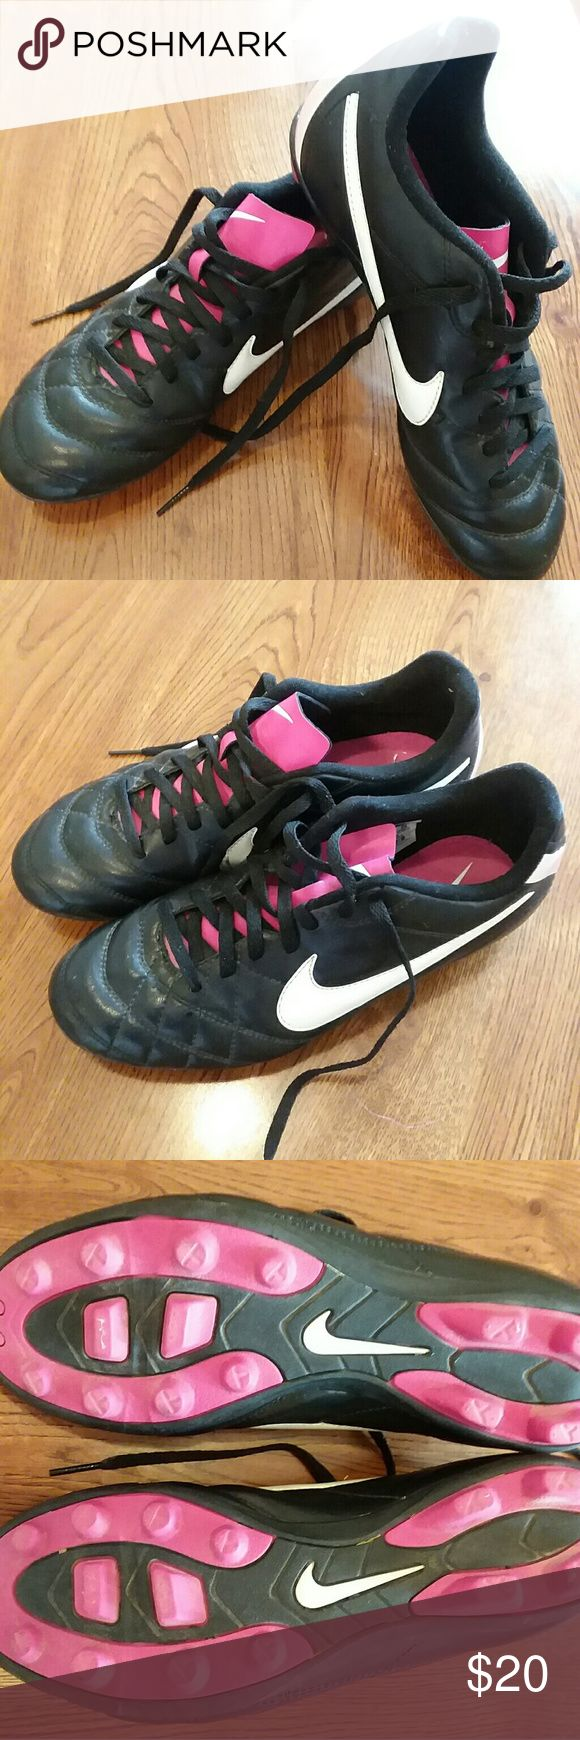 Nike youth soccer cleats Gently used Nike youth soccer cleats girls size 5.5 Nike Shoes Athletic Shoes